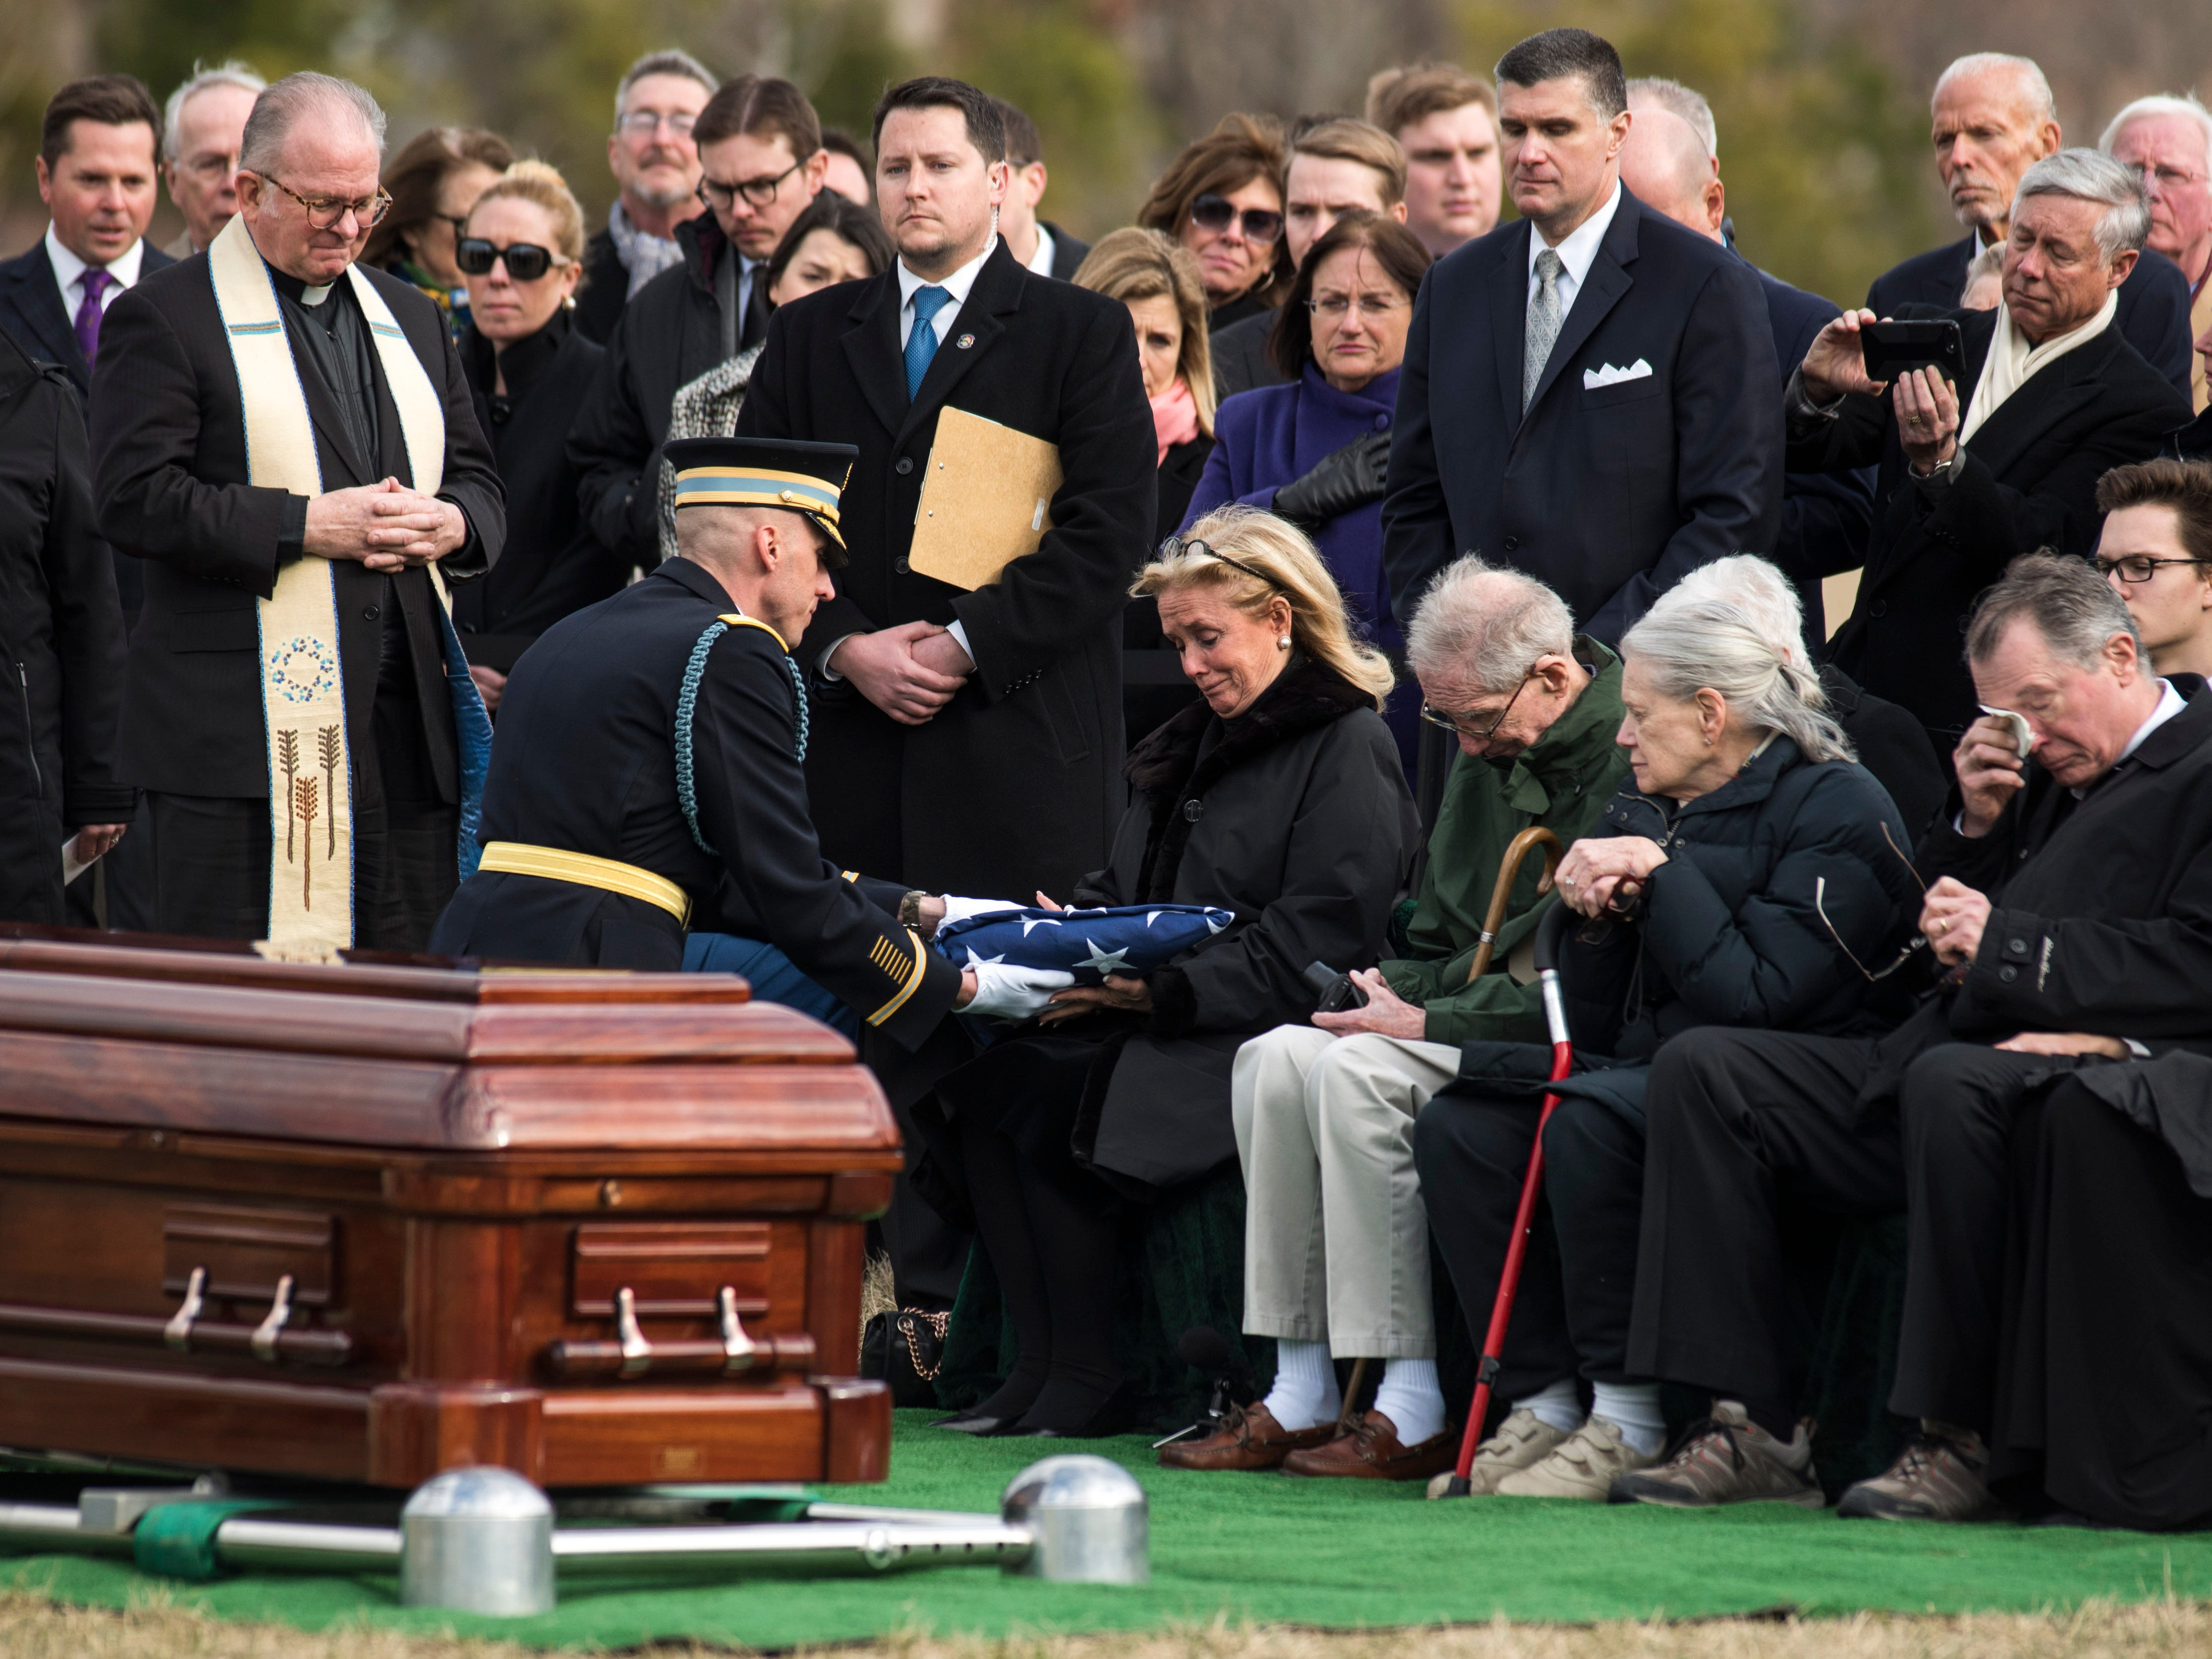 Lt. Col. Allen Kehoe presents the flag from the casket of former Rep. John Dingell, D-Mich., to his wife, Rep. Debbie Dingell, D-Mich., during burial services at Arlington National Cemetery on Friday, Feb. 15, 2019 in Arlington, Va.